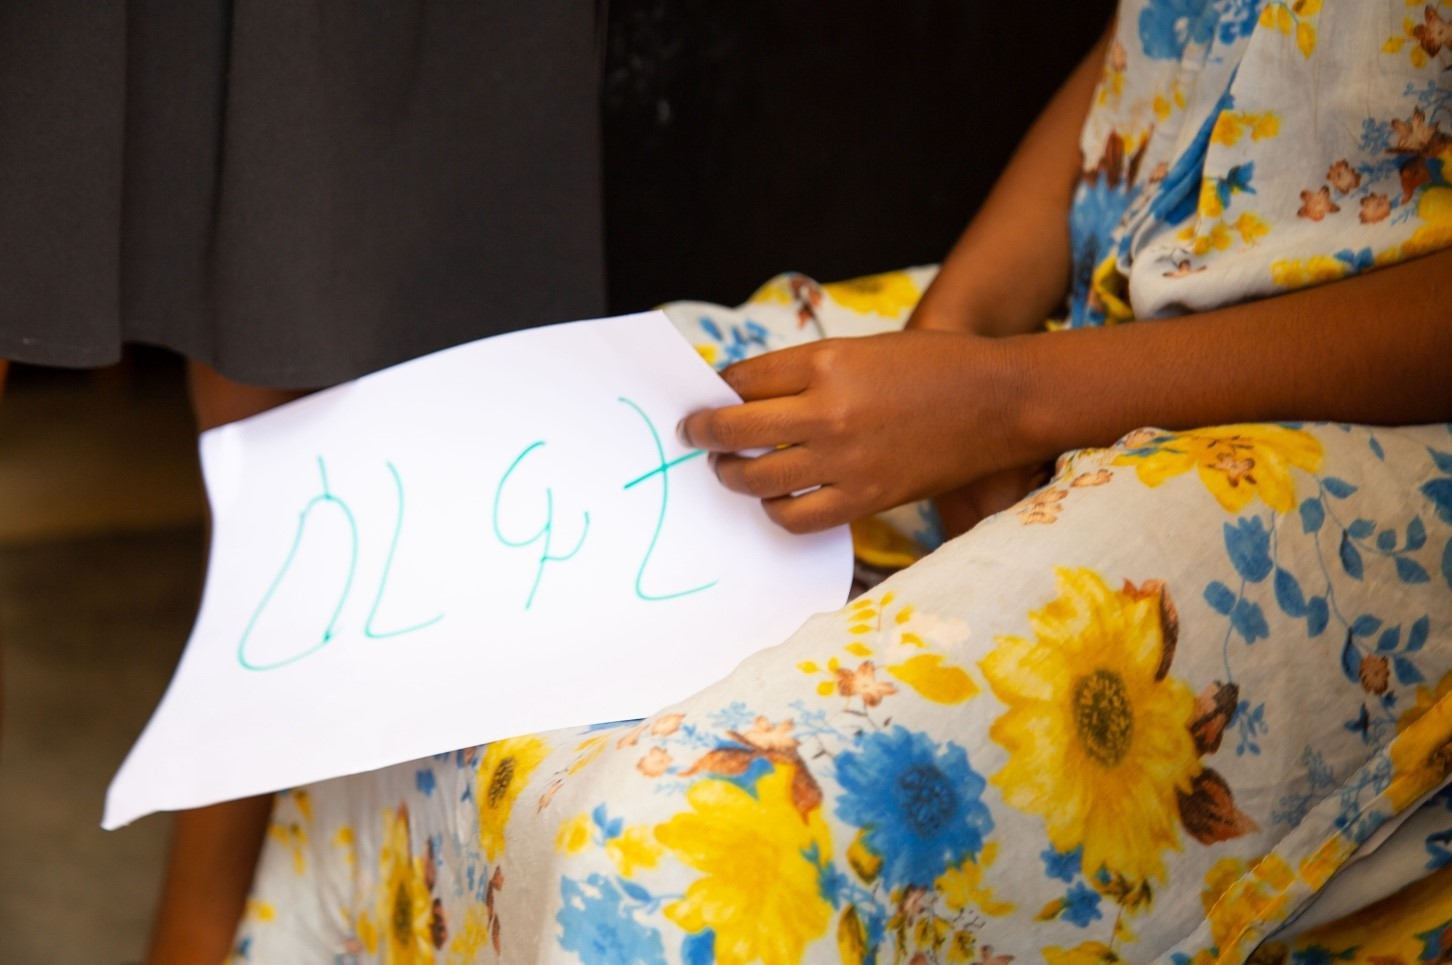 Urgent funding needed to assist survivors of sexual and gender-based violence in Tigray